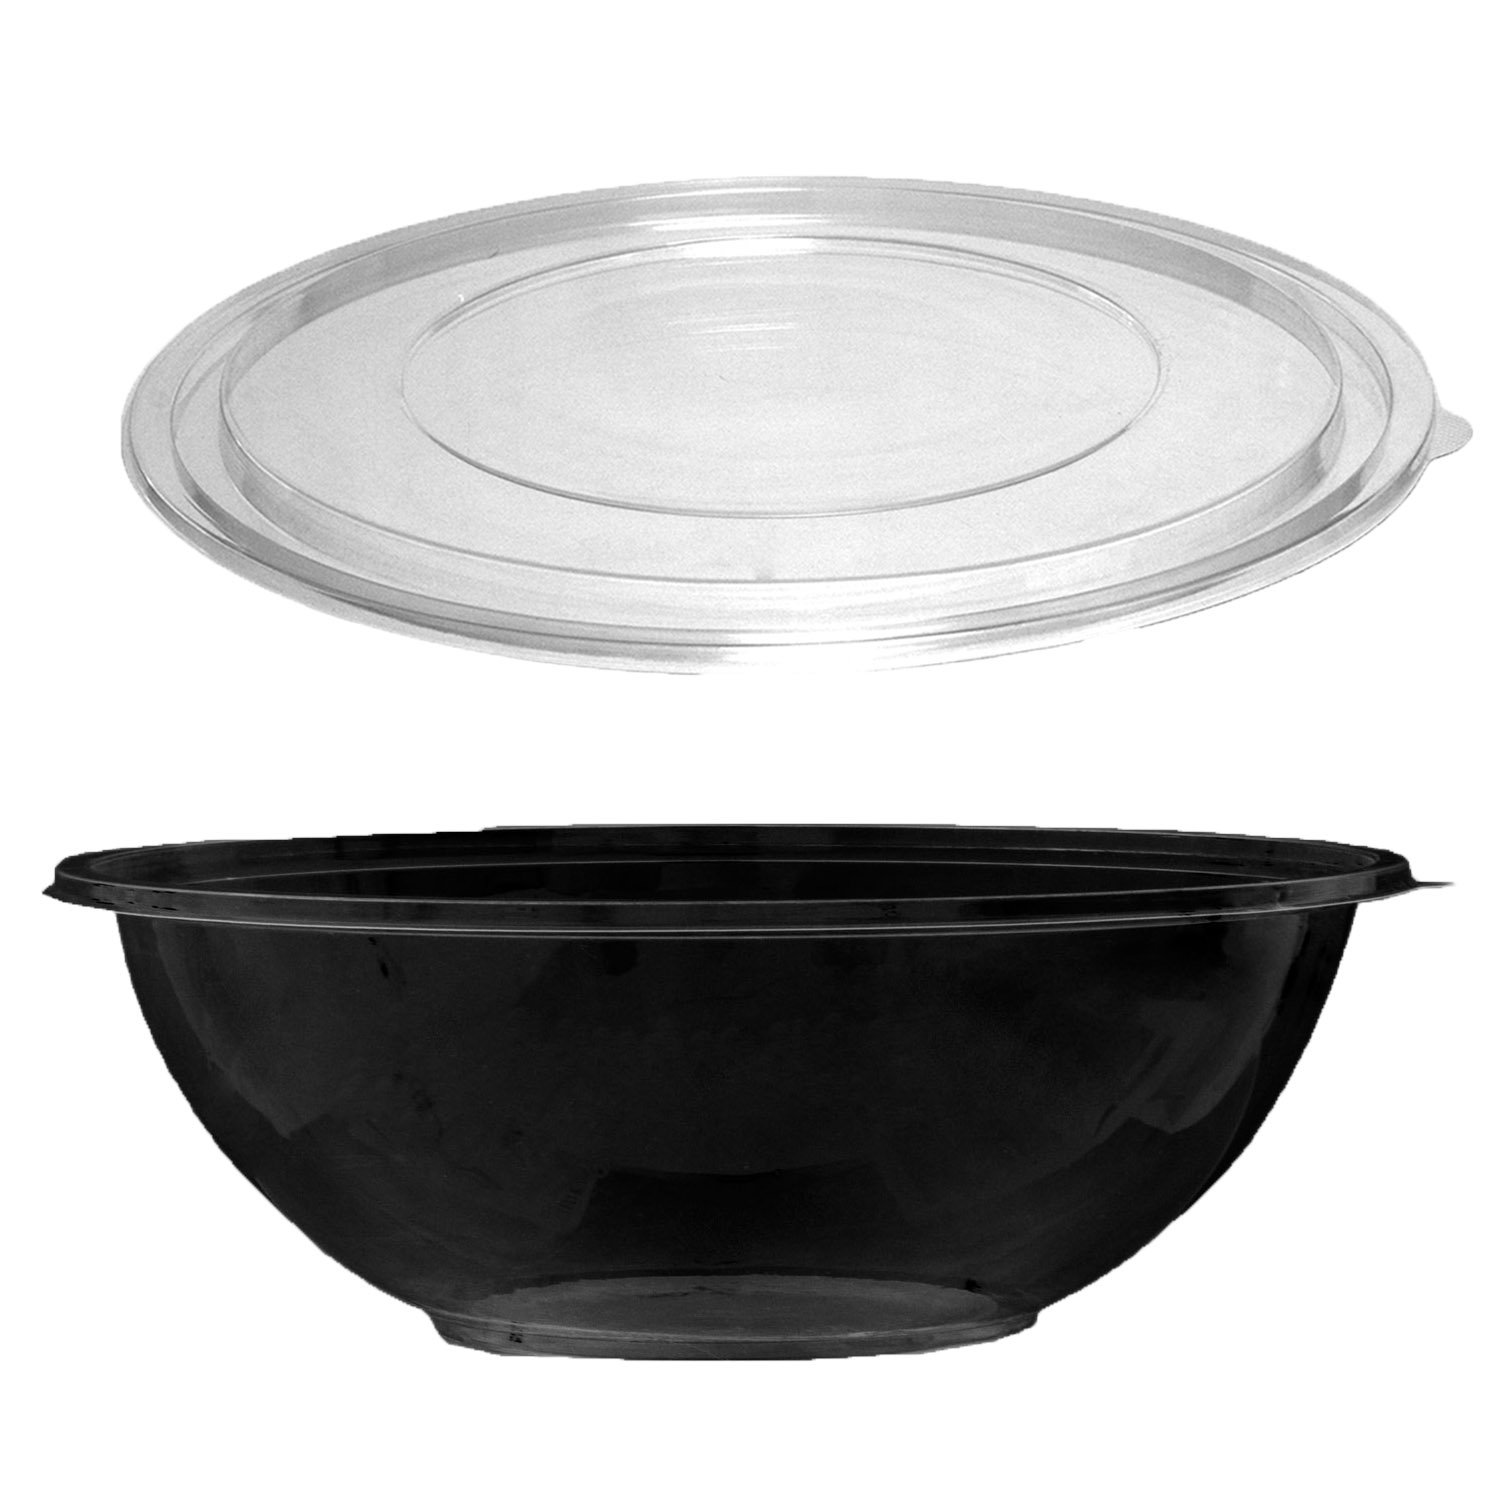 Party Essentials N332017 Soft Plastic 320-Ounce Serving/Catering Bowls, Black with Clear Lids, Set of 2